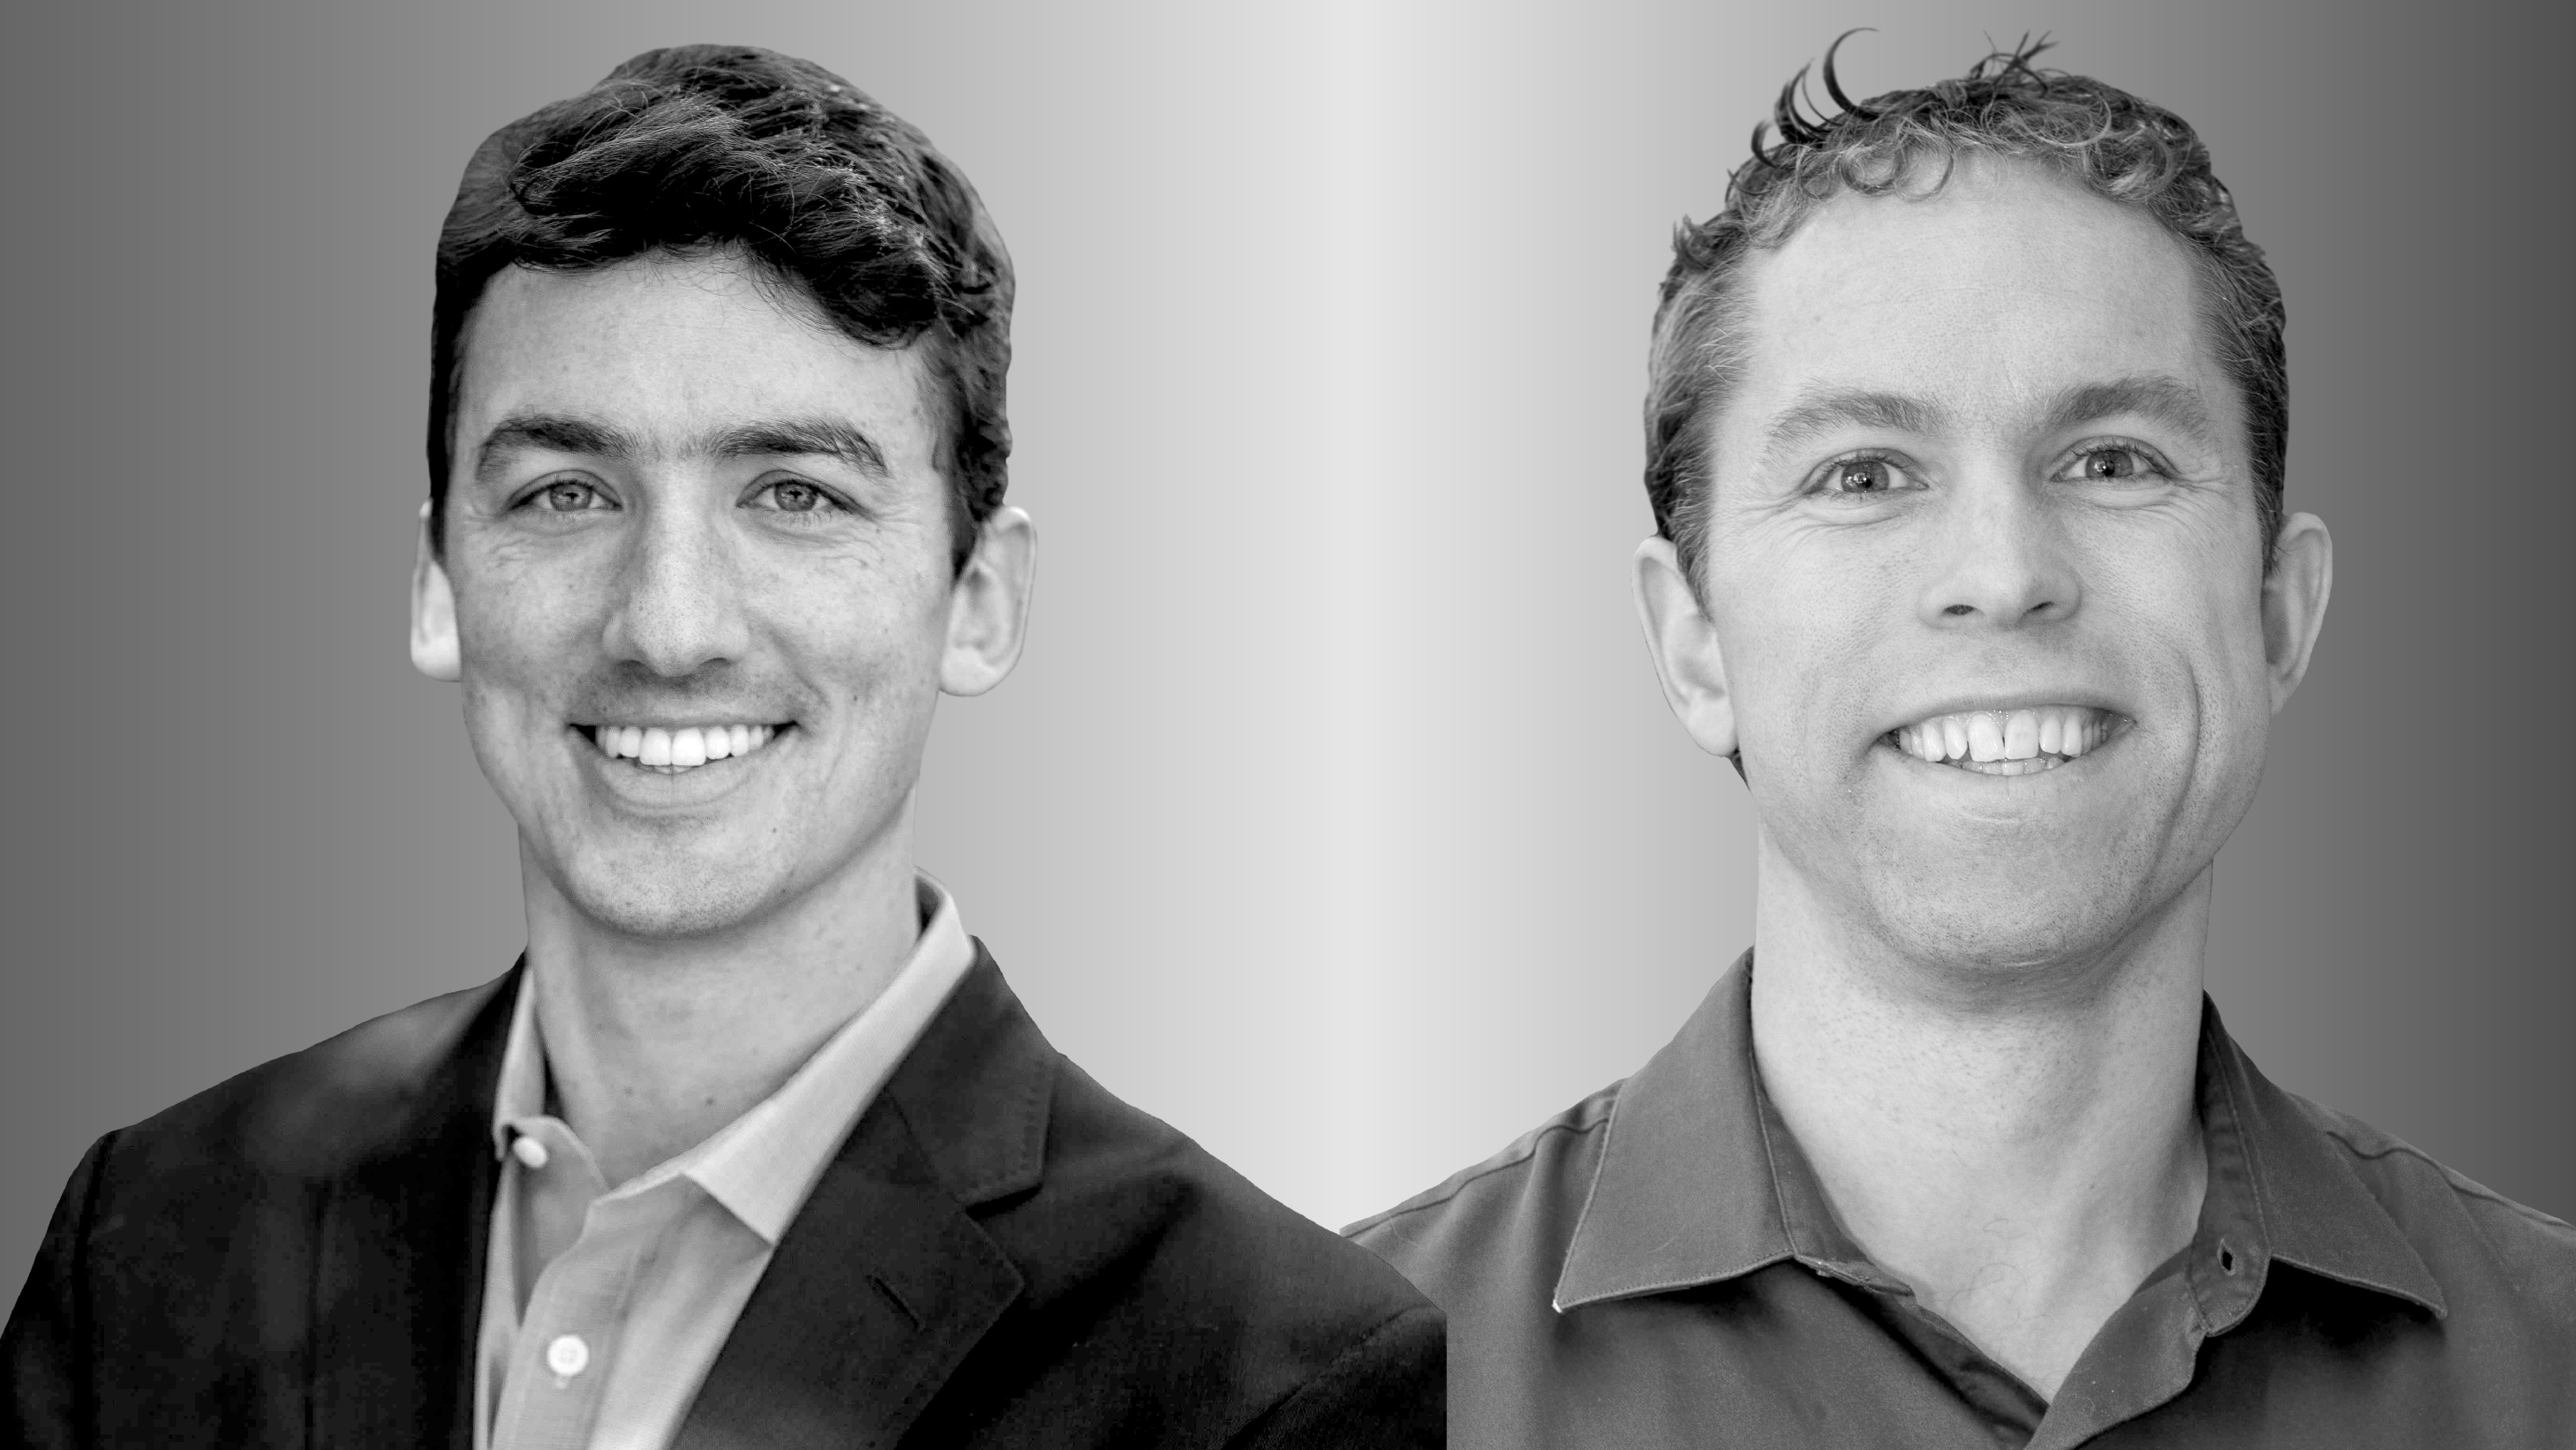 Dr. Hunt Allcott and Dr. Evan Rose on the Microsoft Research Podcast